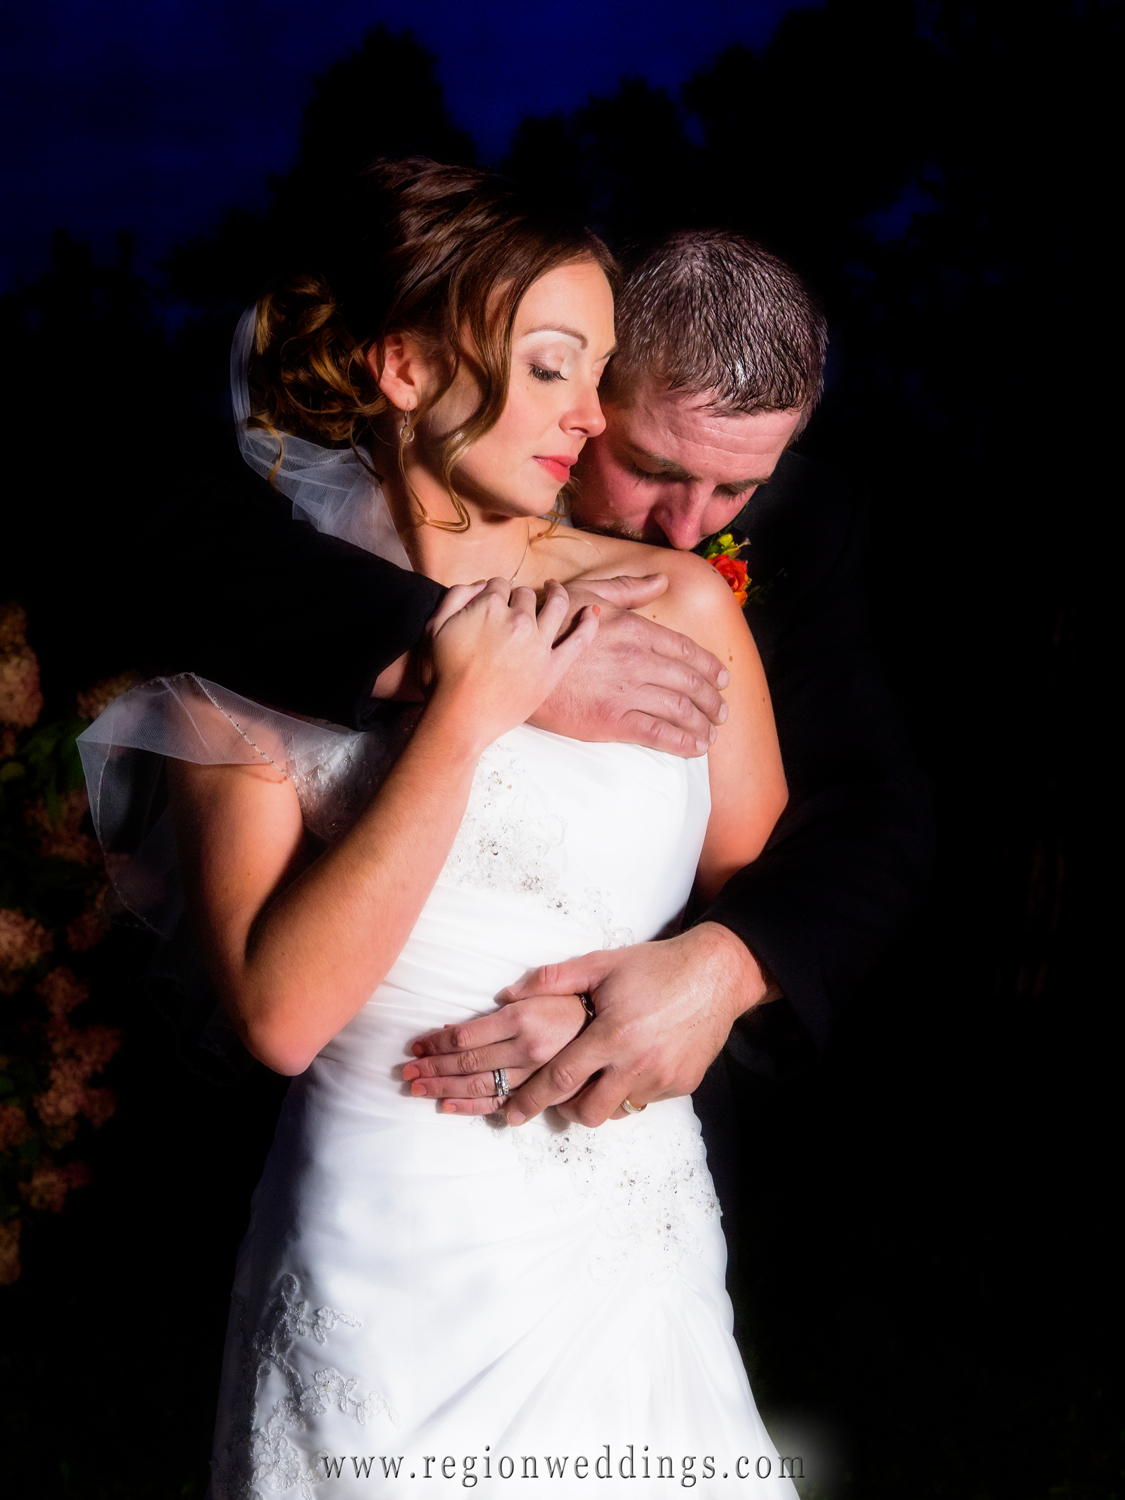 The bride and groom embrace as night fall.